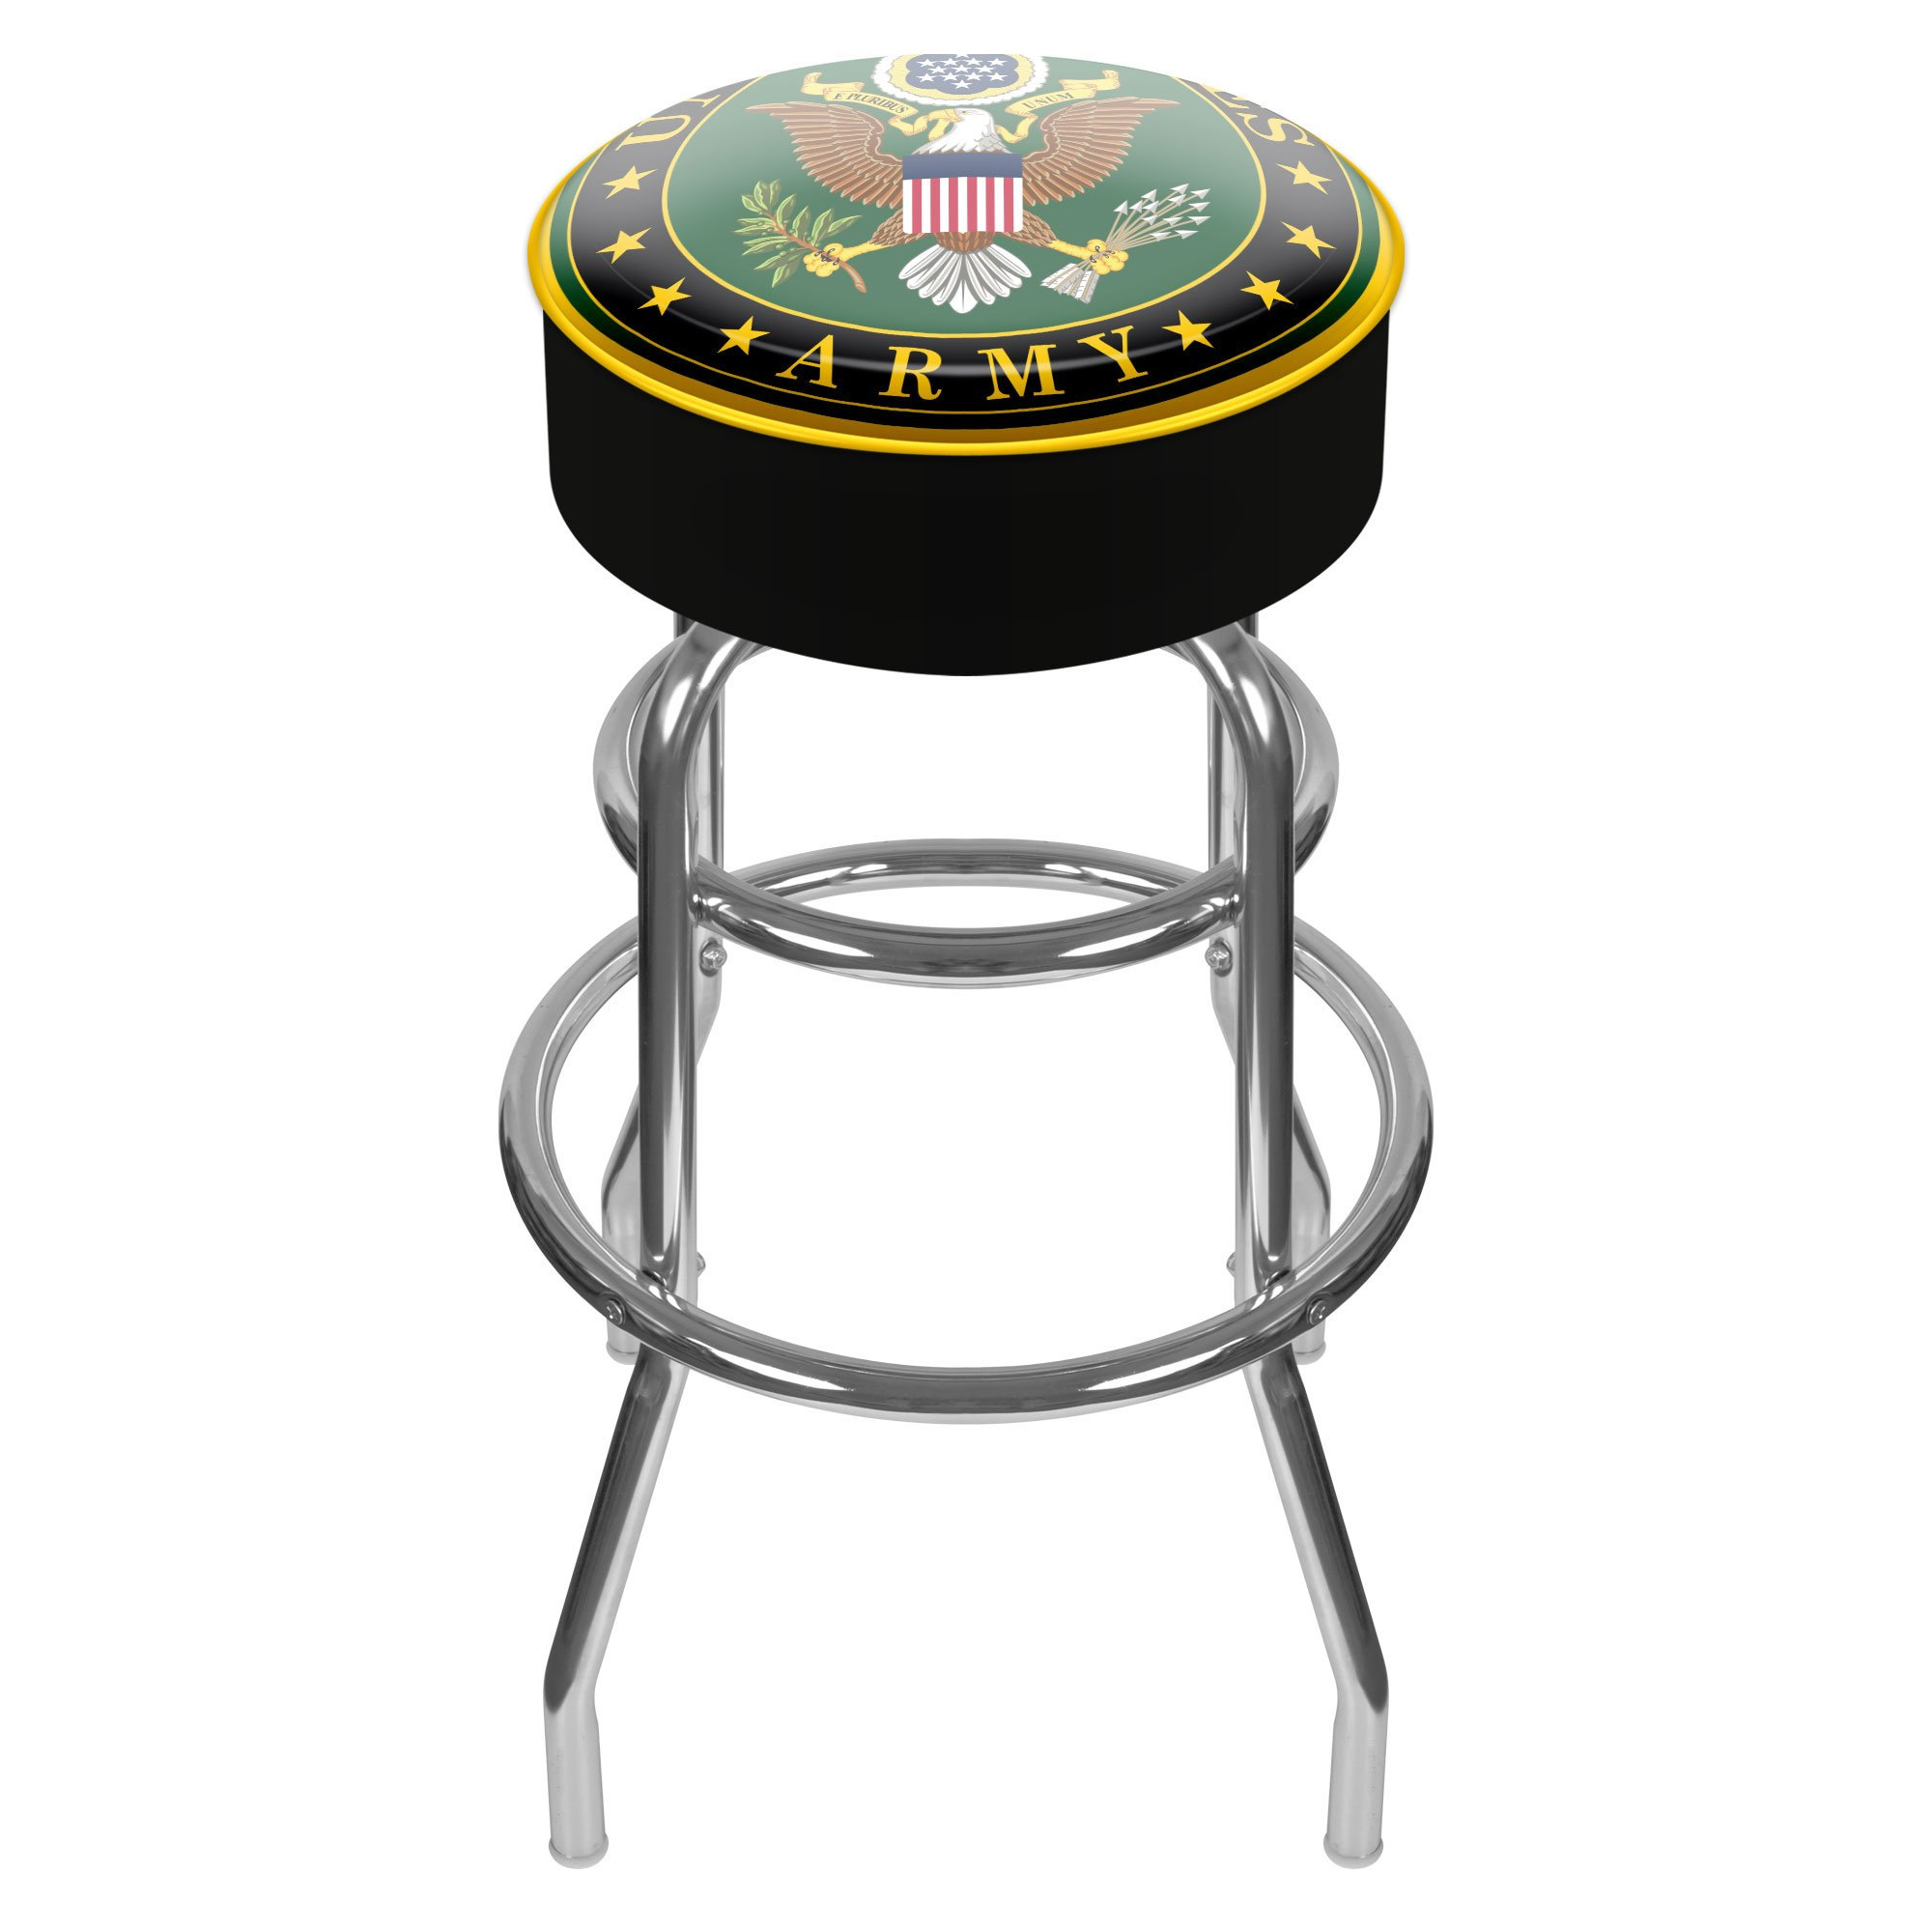 Trademark Gameroom United States Army Padded Swivel Bar Stool by Trademark Gameroom (Image #1)